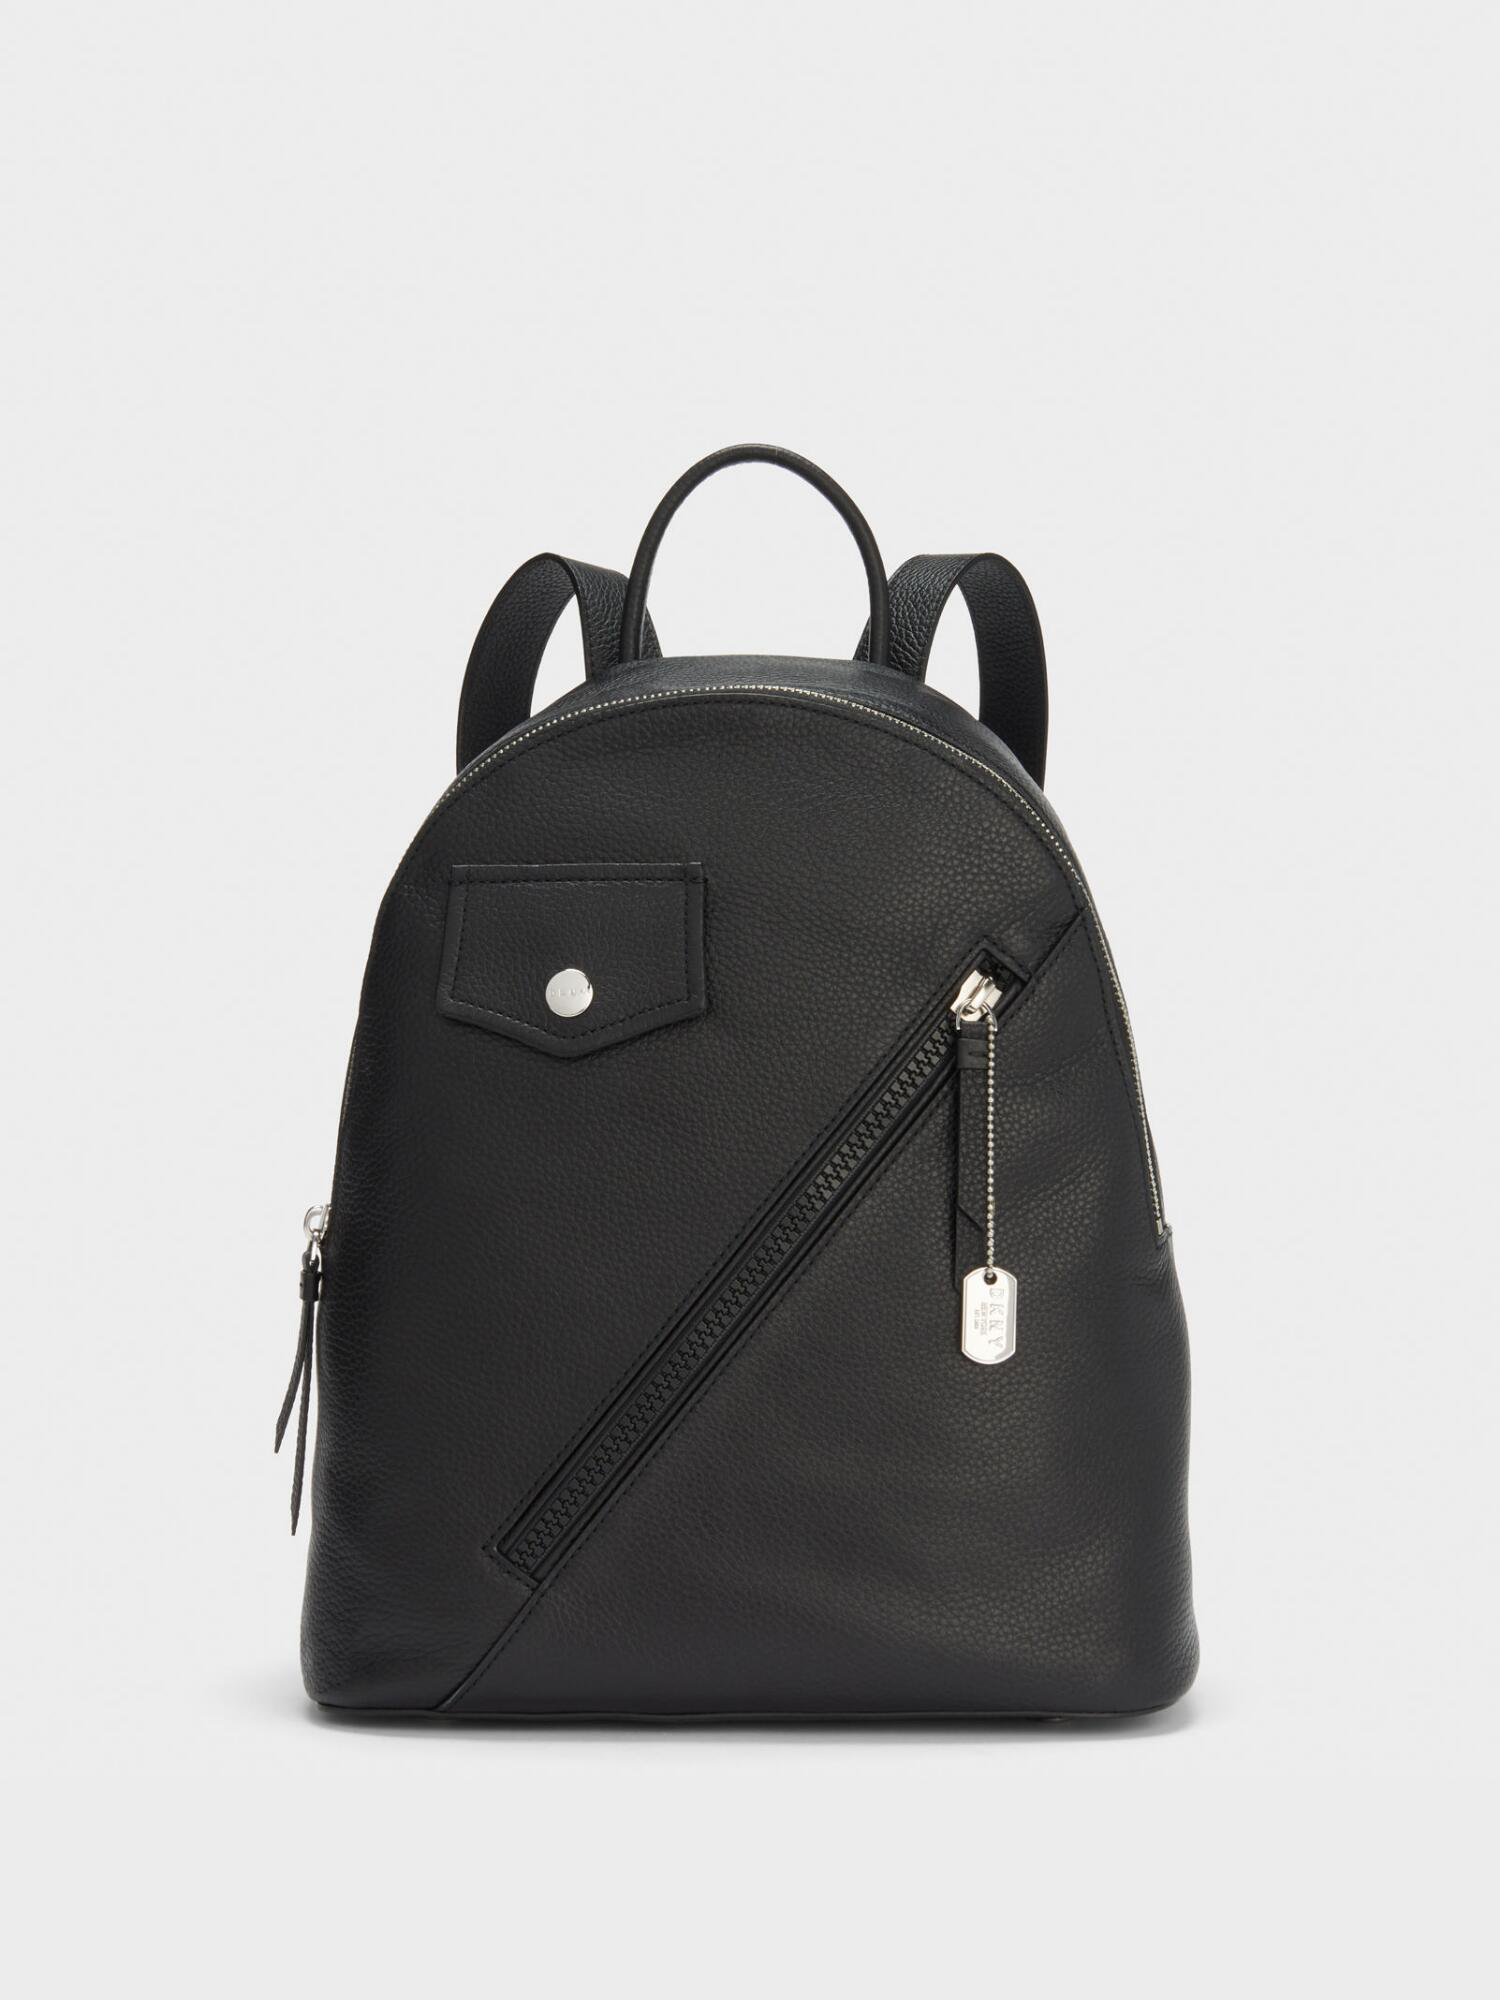 705347152 Donna Karan Jagger Leather Backpack In Black/Silver | ModeSens